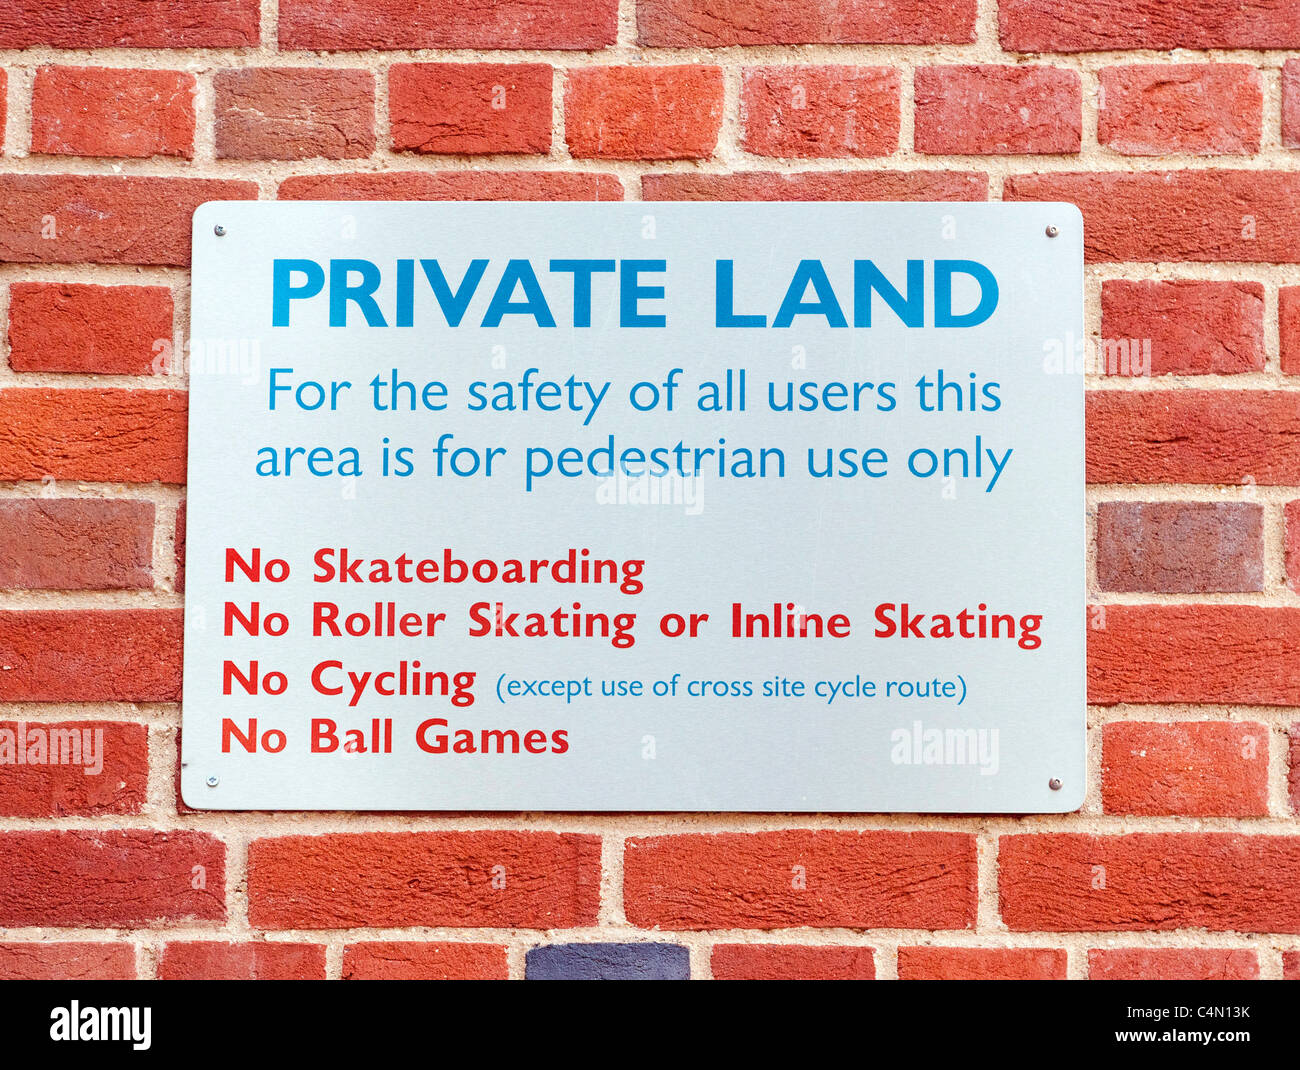 Private Land sign in a town centre banning various activities - Stock Image